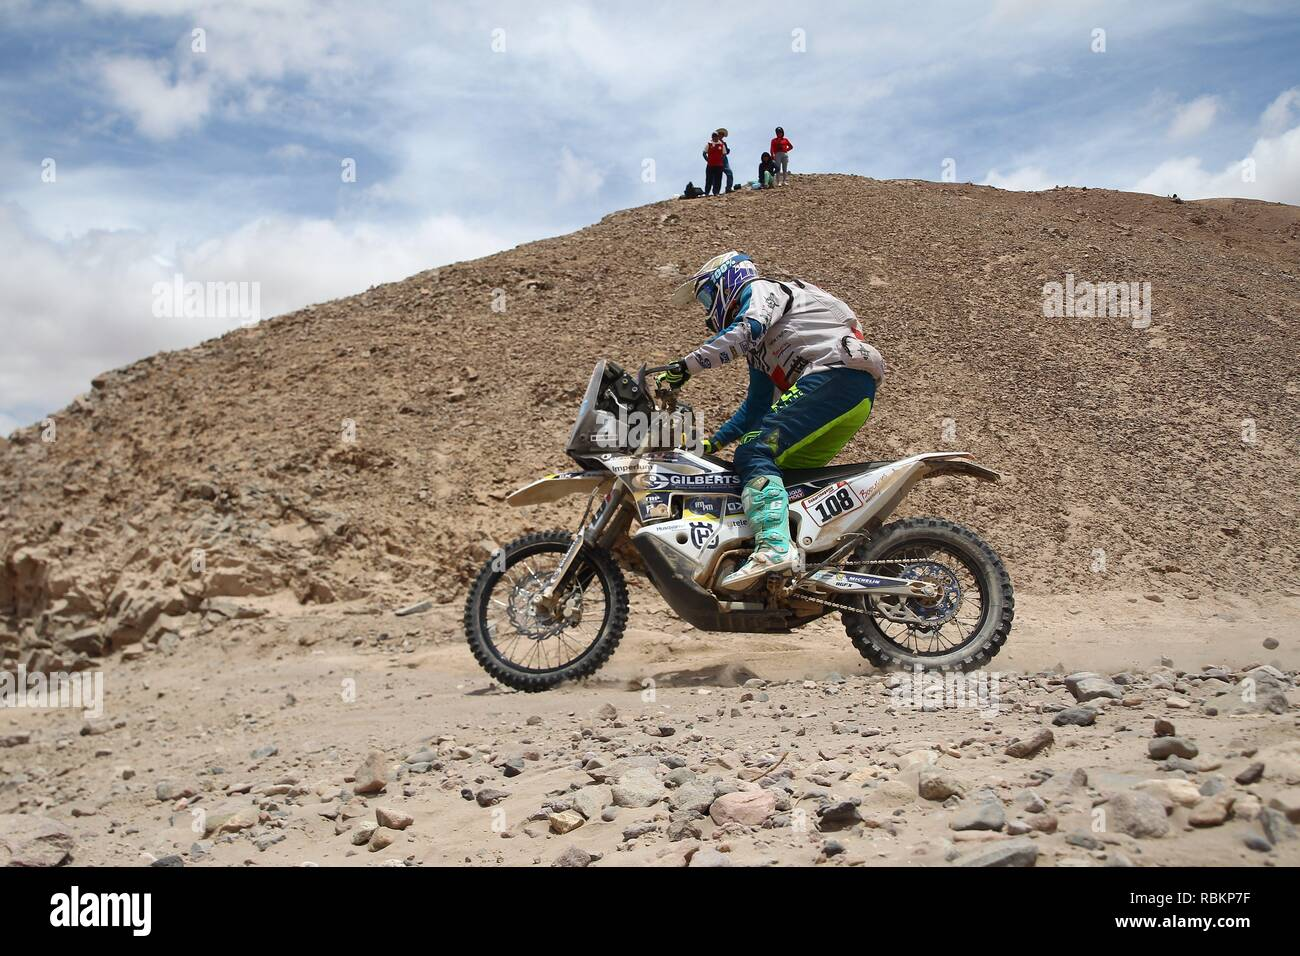 Tacna, Peru. 10th Jan, 2019. South African Kenneth Gilbert rides his Husqvarna during the fourth stage of the Rally Dakar 2019 between Arequipa and Tacna, in Peru, 10 January 2019. Credit: Ernesto Arias/EFE/Alamy Live News - Stock Image